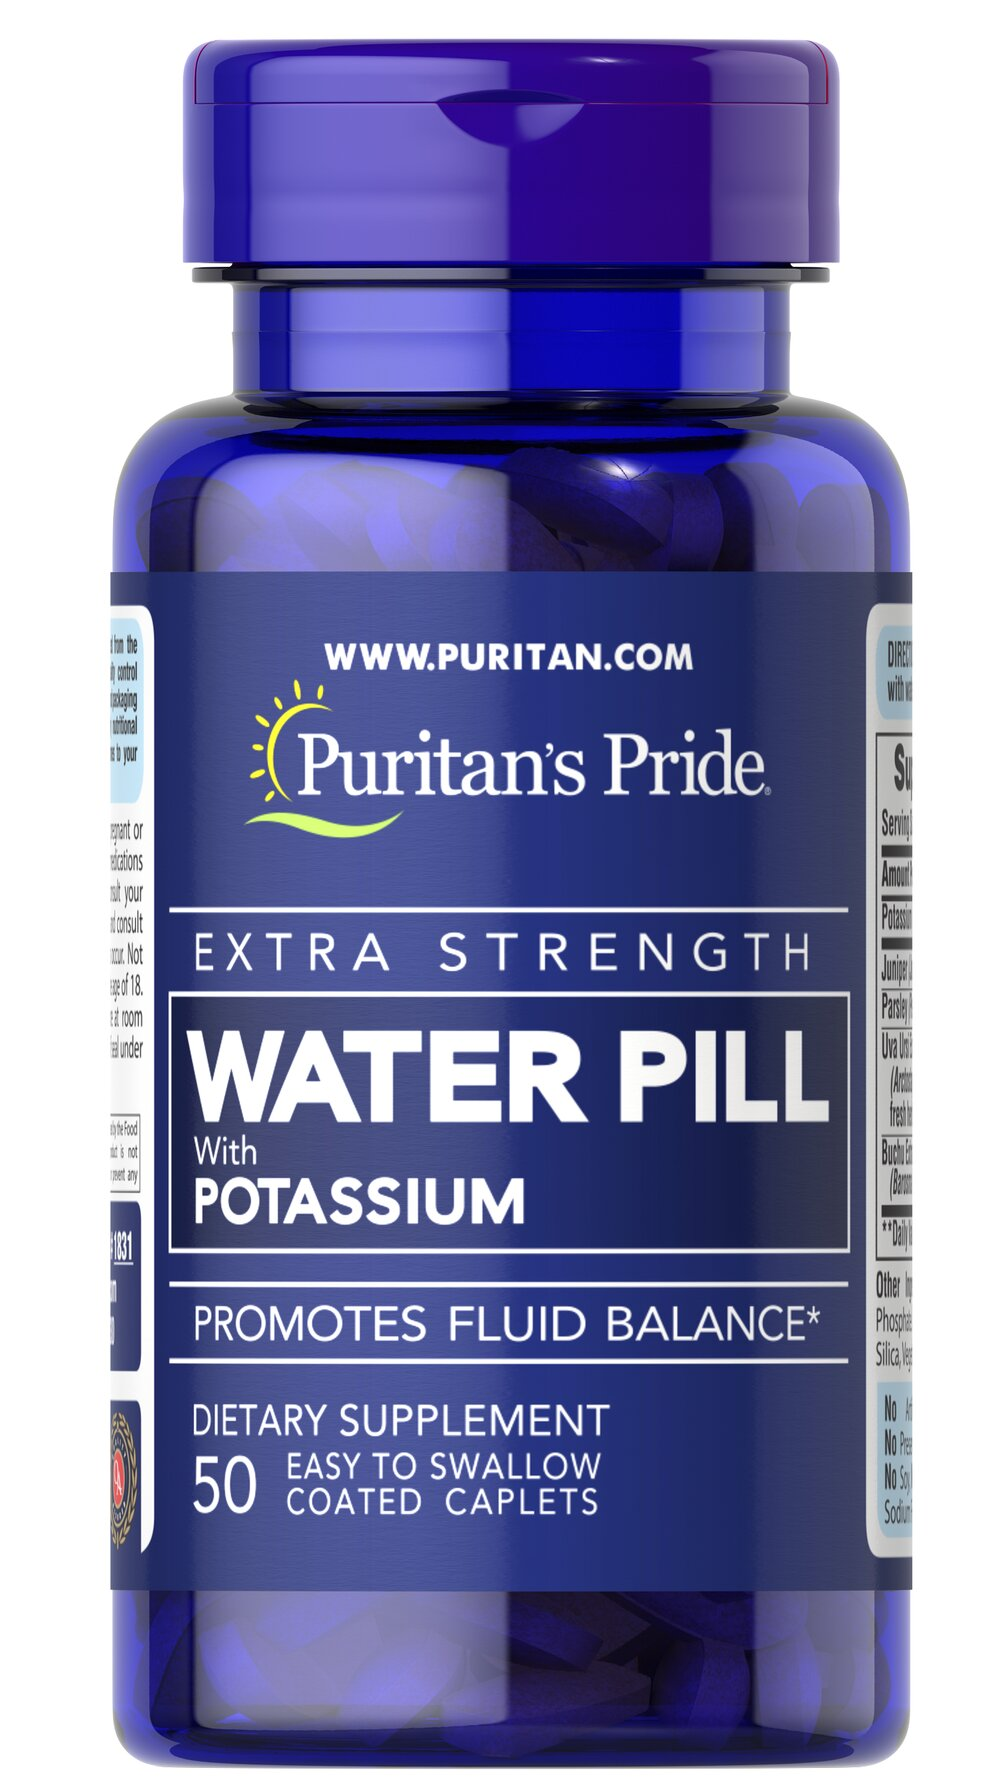 Extra Strength Water Pill™ <p>Promotes Fluid Balance**</p><p>This product contains the essential mineral Potassium, which works with sodium to regulate the body's water balance.** EXTRA STRENGTH WATER PILL™ Tablets also contain Uva Ursi, Buchu, Juniper and Parsley.</p> 50 Tablets  $7.29